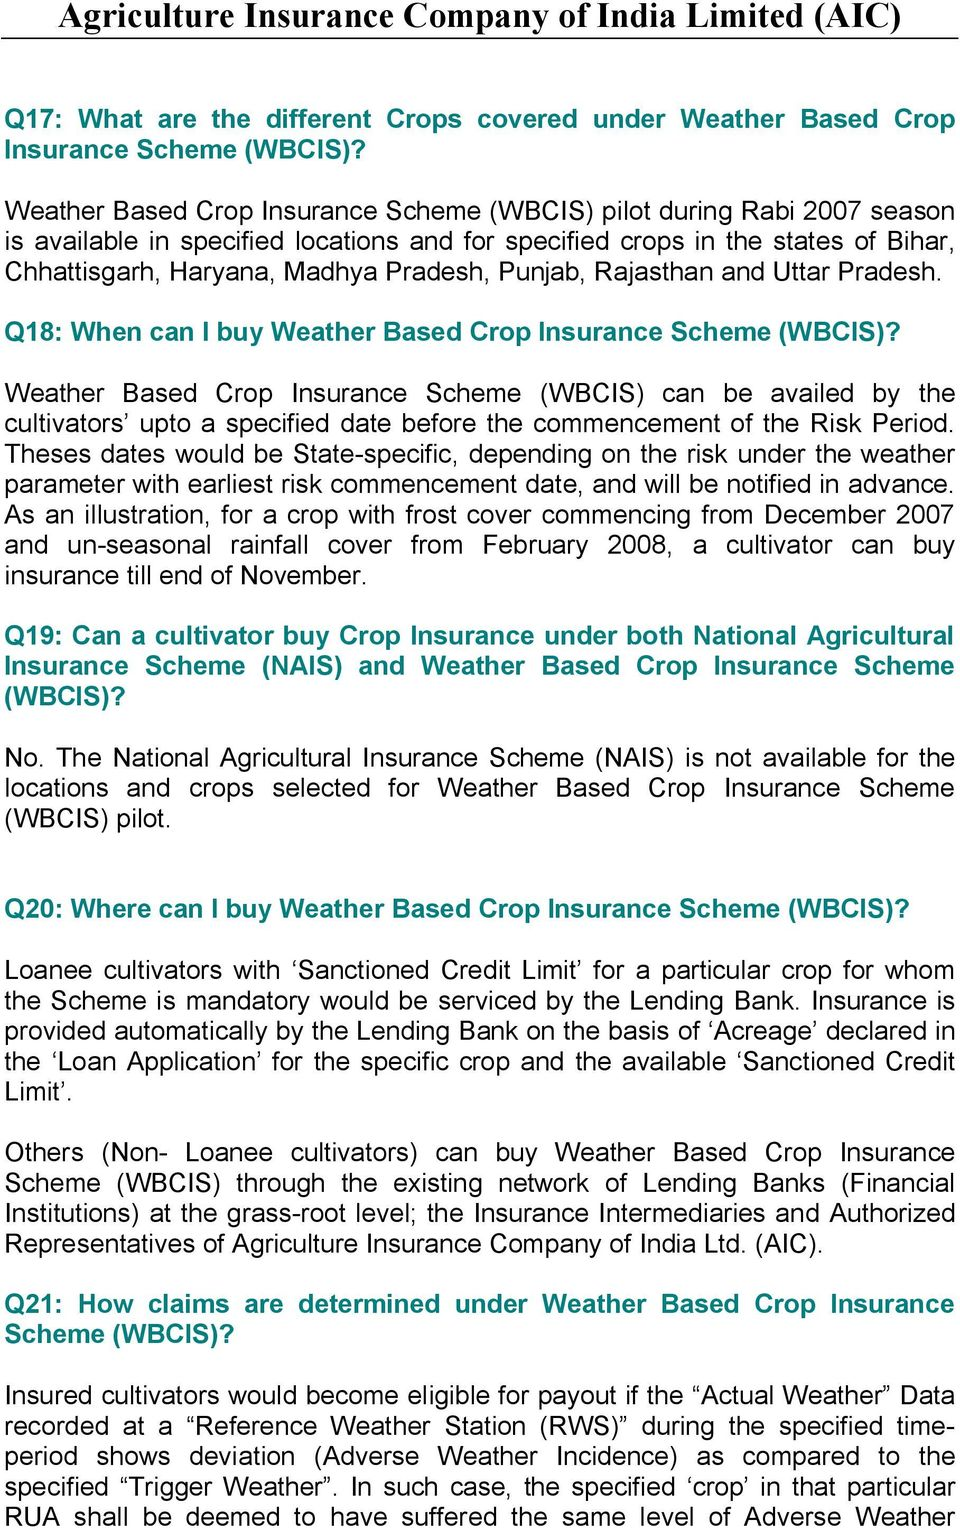 Punjab, Rajasthan and Uttar Pradesh. Q18: When can I buy Weather Based Crop Insurance Scheme (WBCIS)?